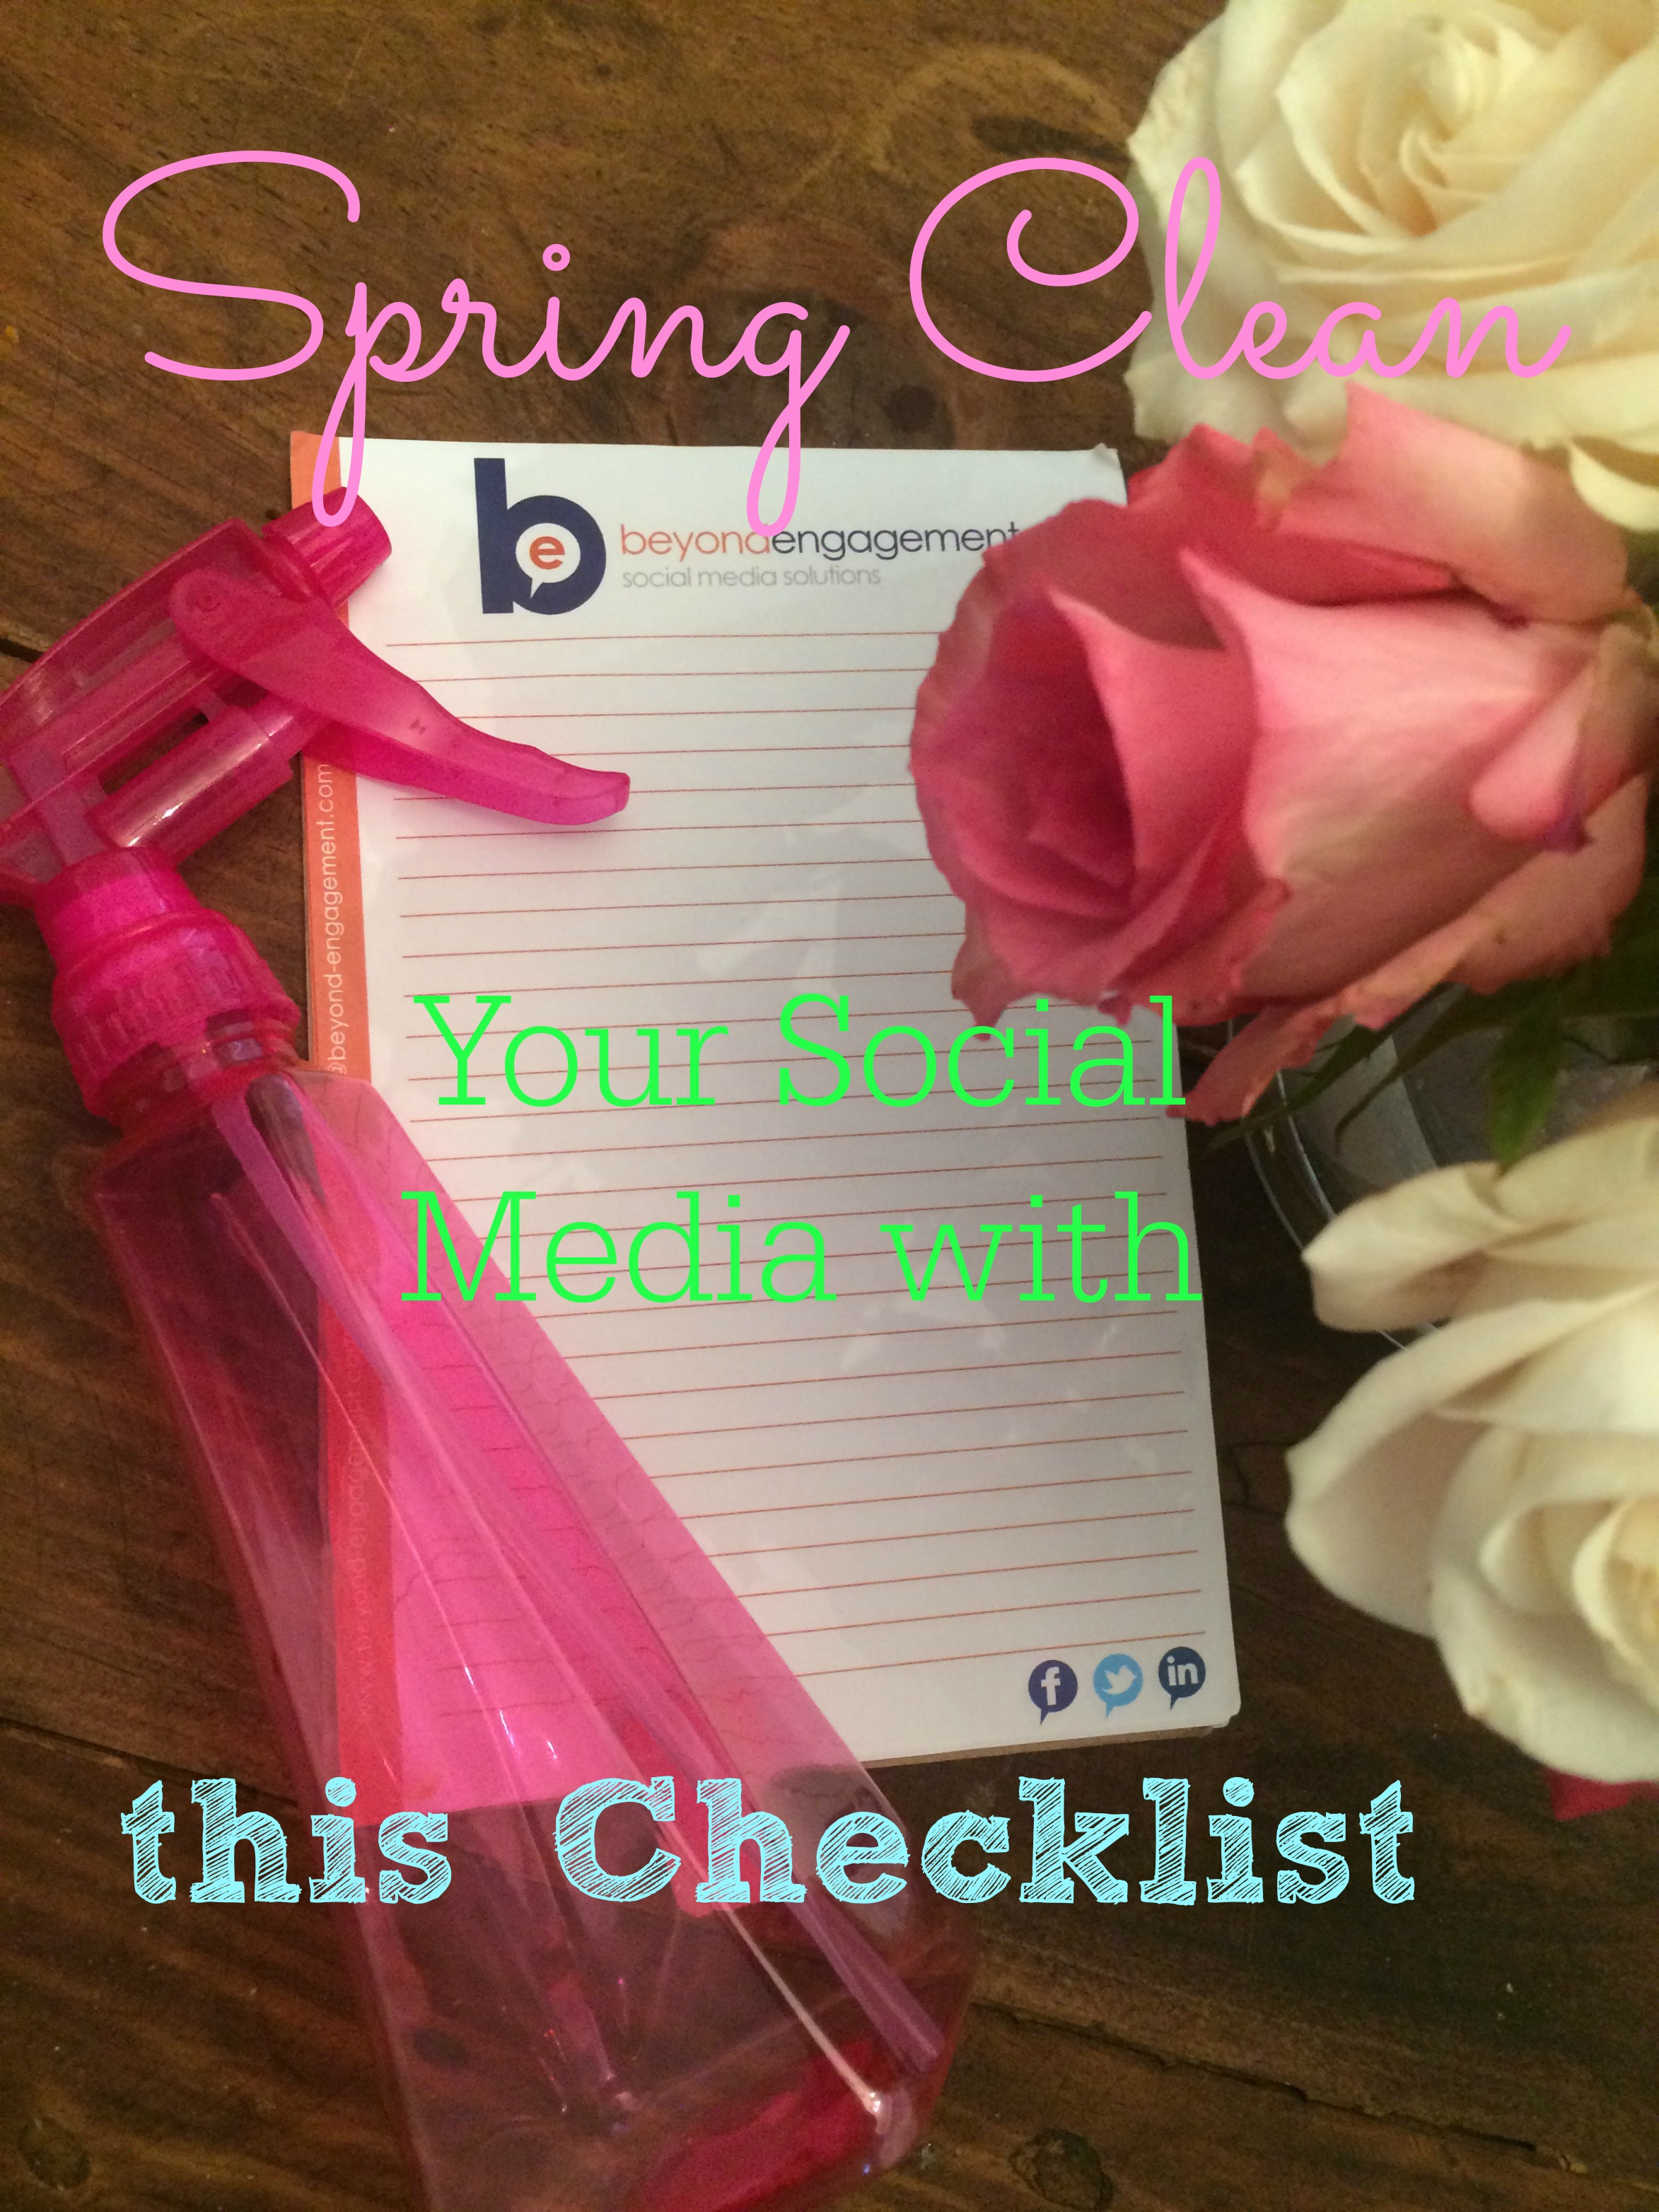 Spring Clean Your Social Media with this Checklist